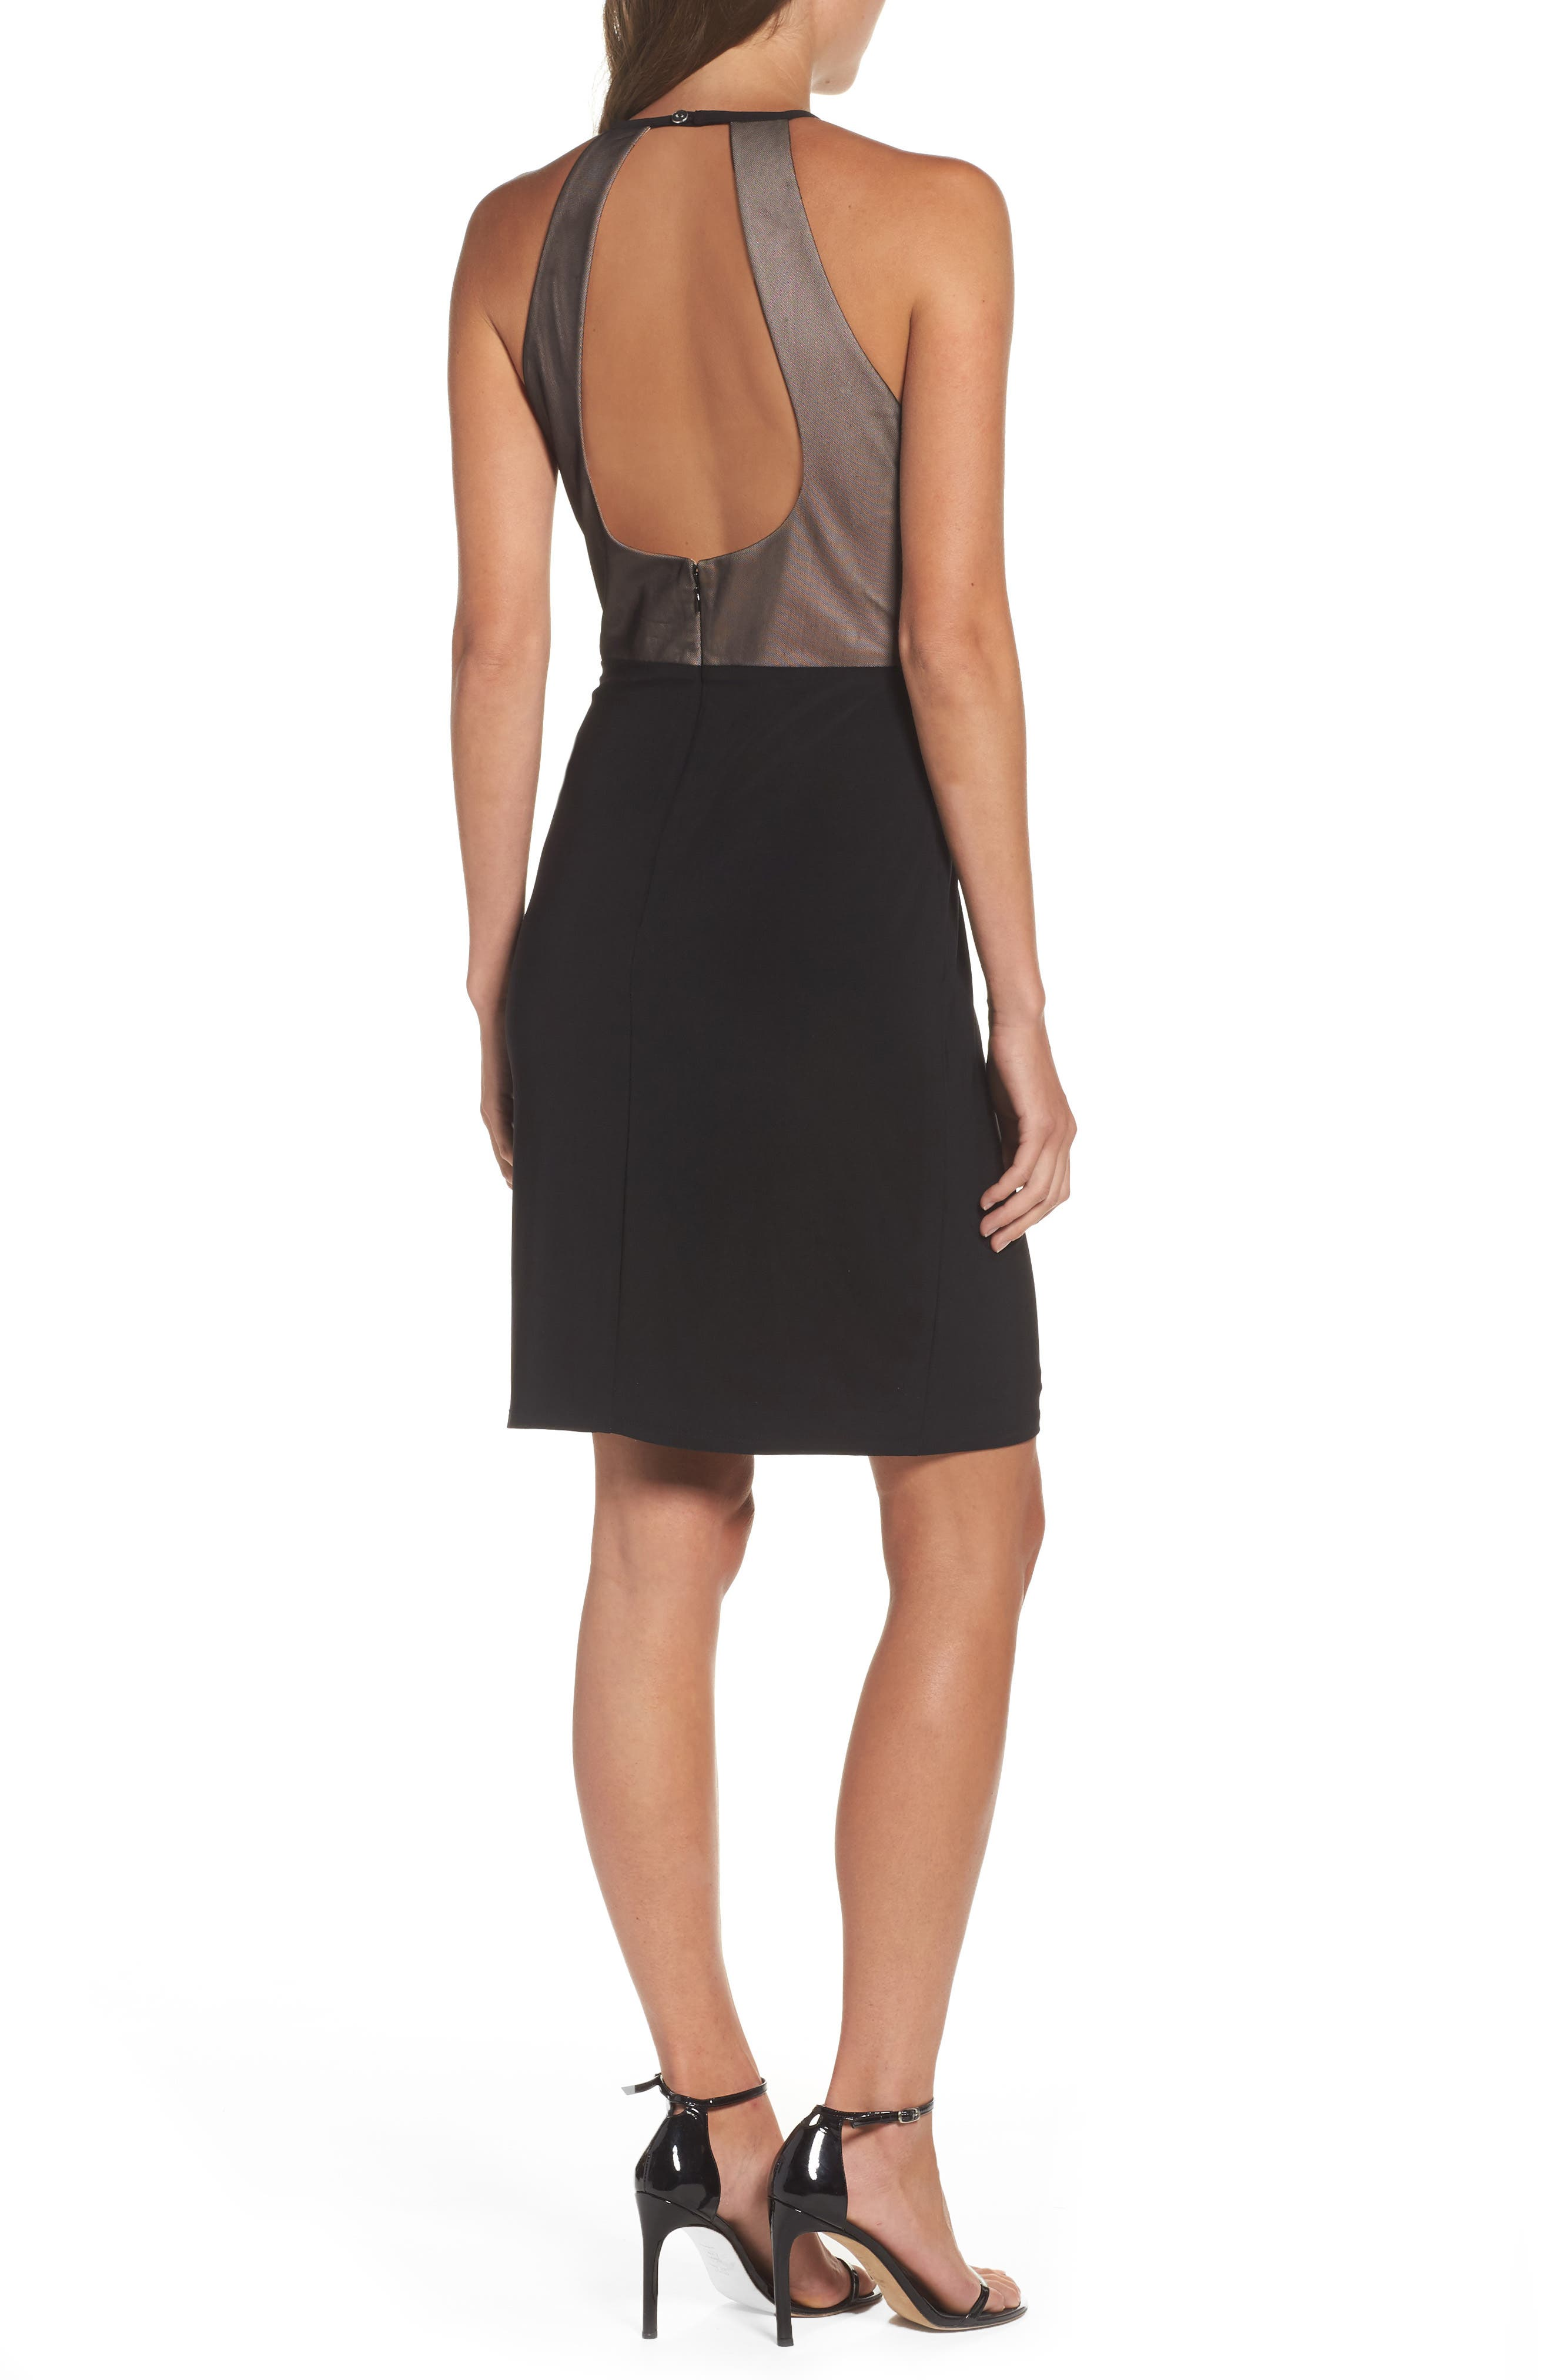 Willus Sheath Dress,                             Alternate thumbnail 2, color,                             Black/ Nude